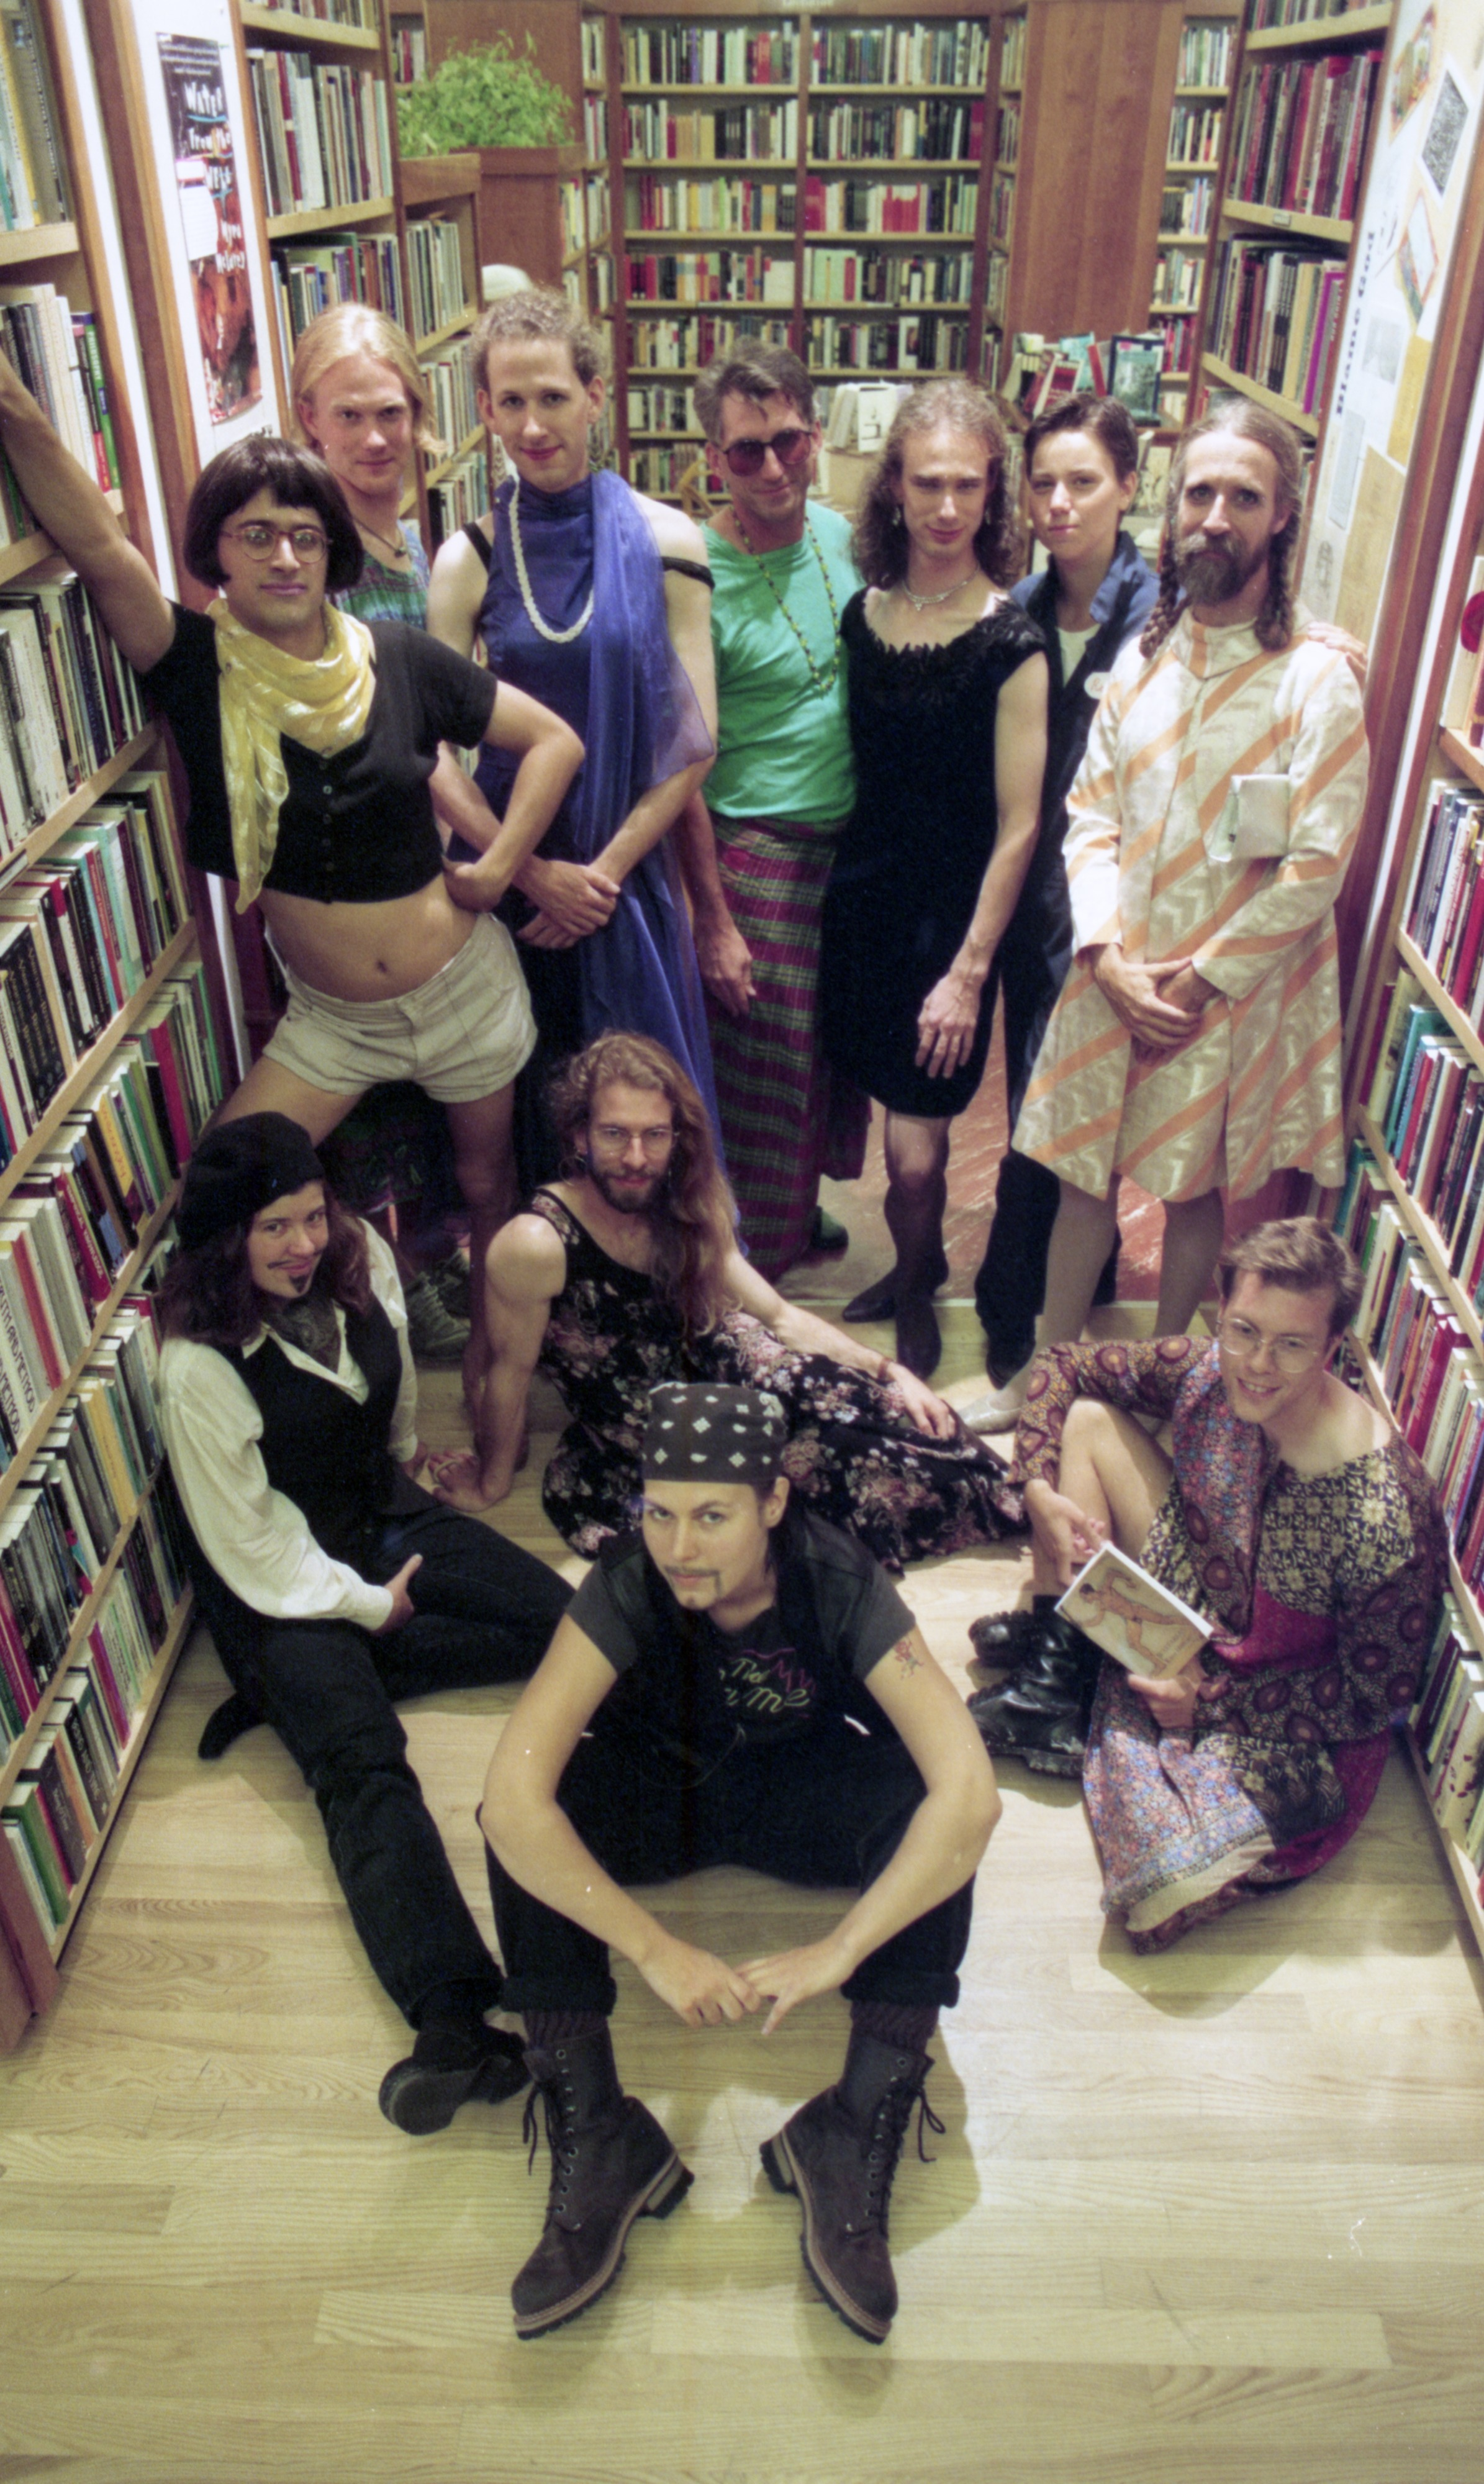 Employees Of Shaman Drum Bookshop Cross-Dress For A Day, September 1995 image